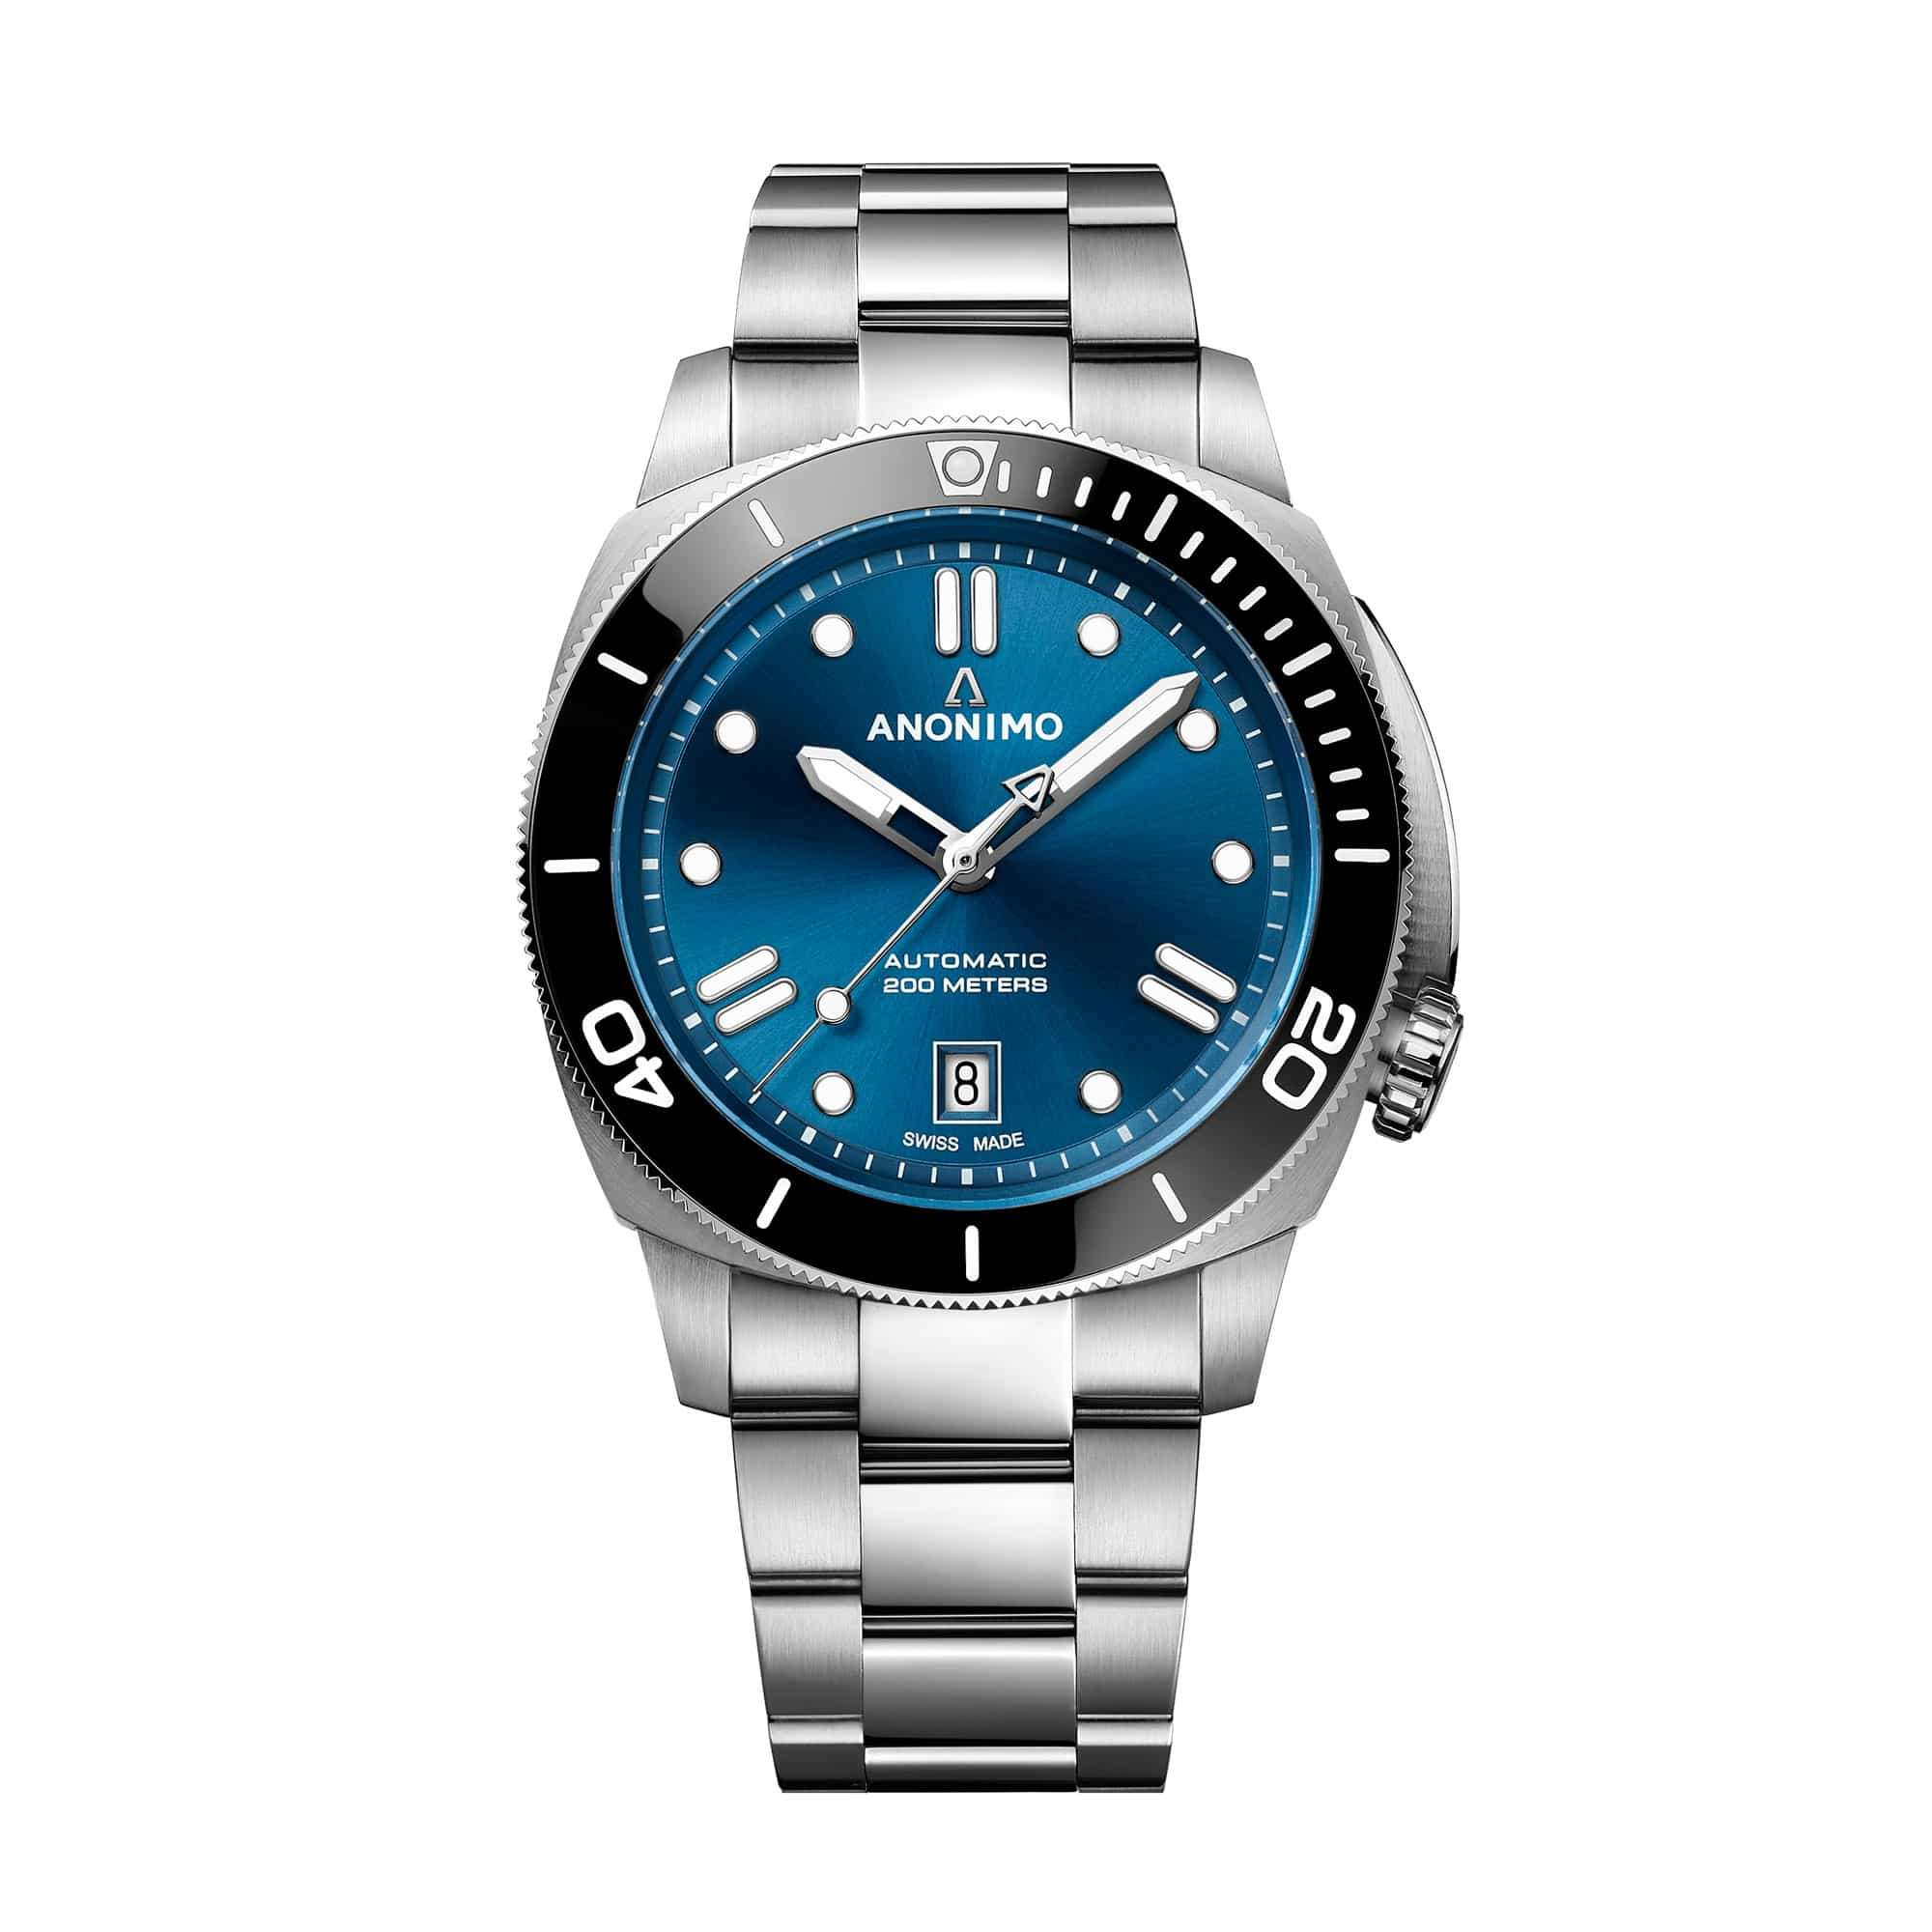 Anonimo Nautilo 42 mm Blue Dial AM-5009.09.103.M01 – Swiss Time